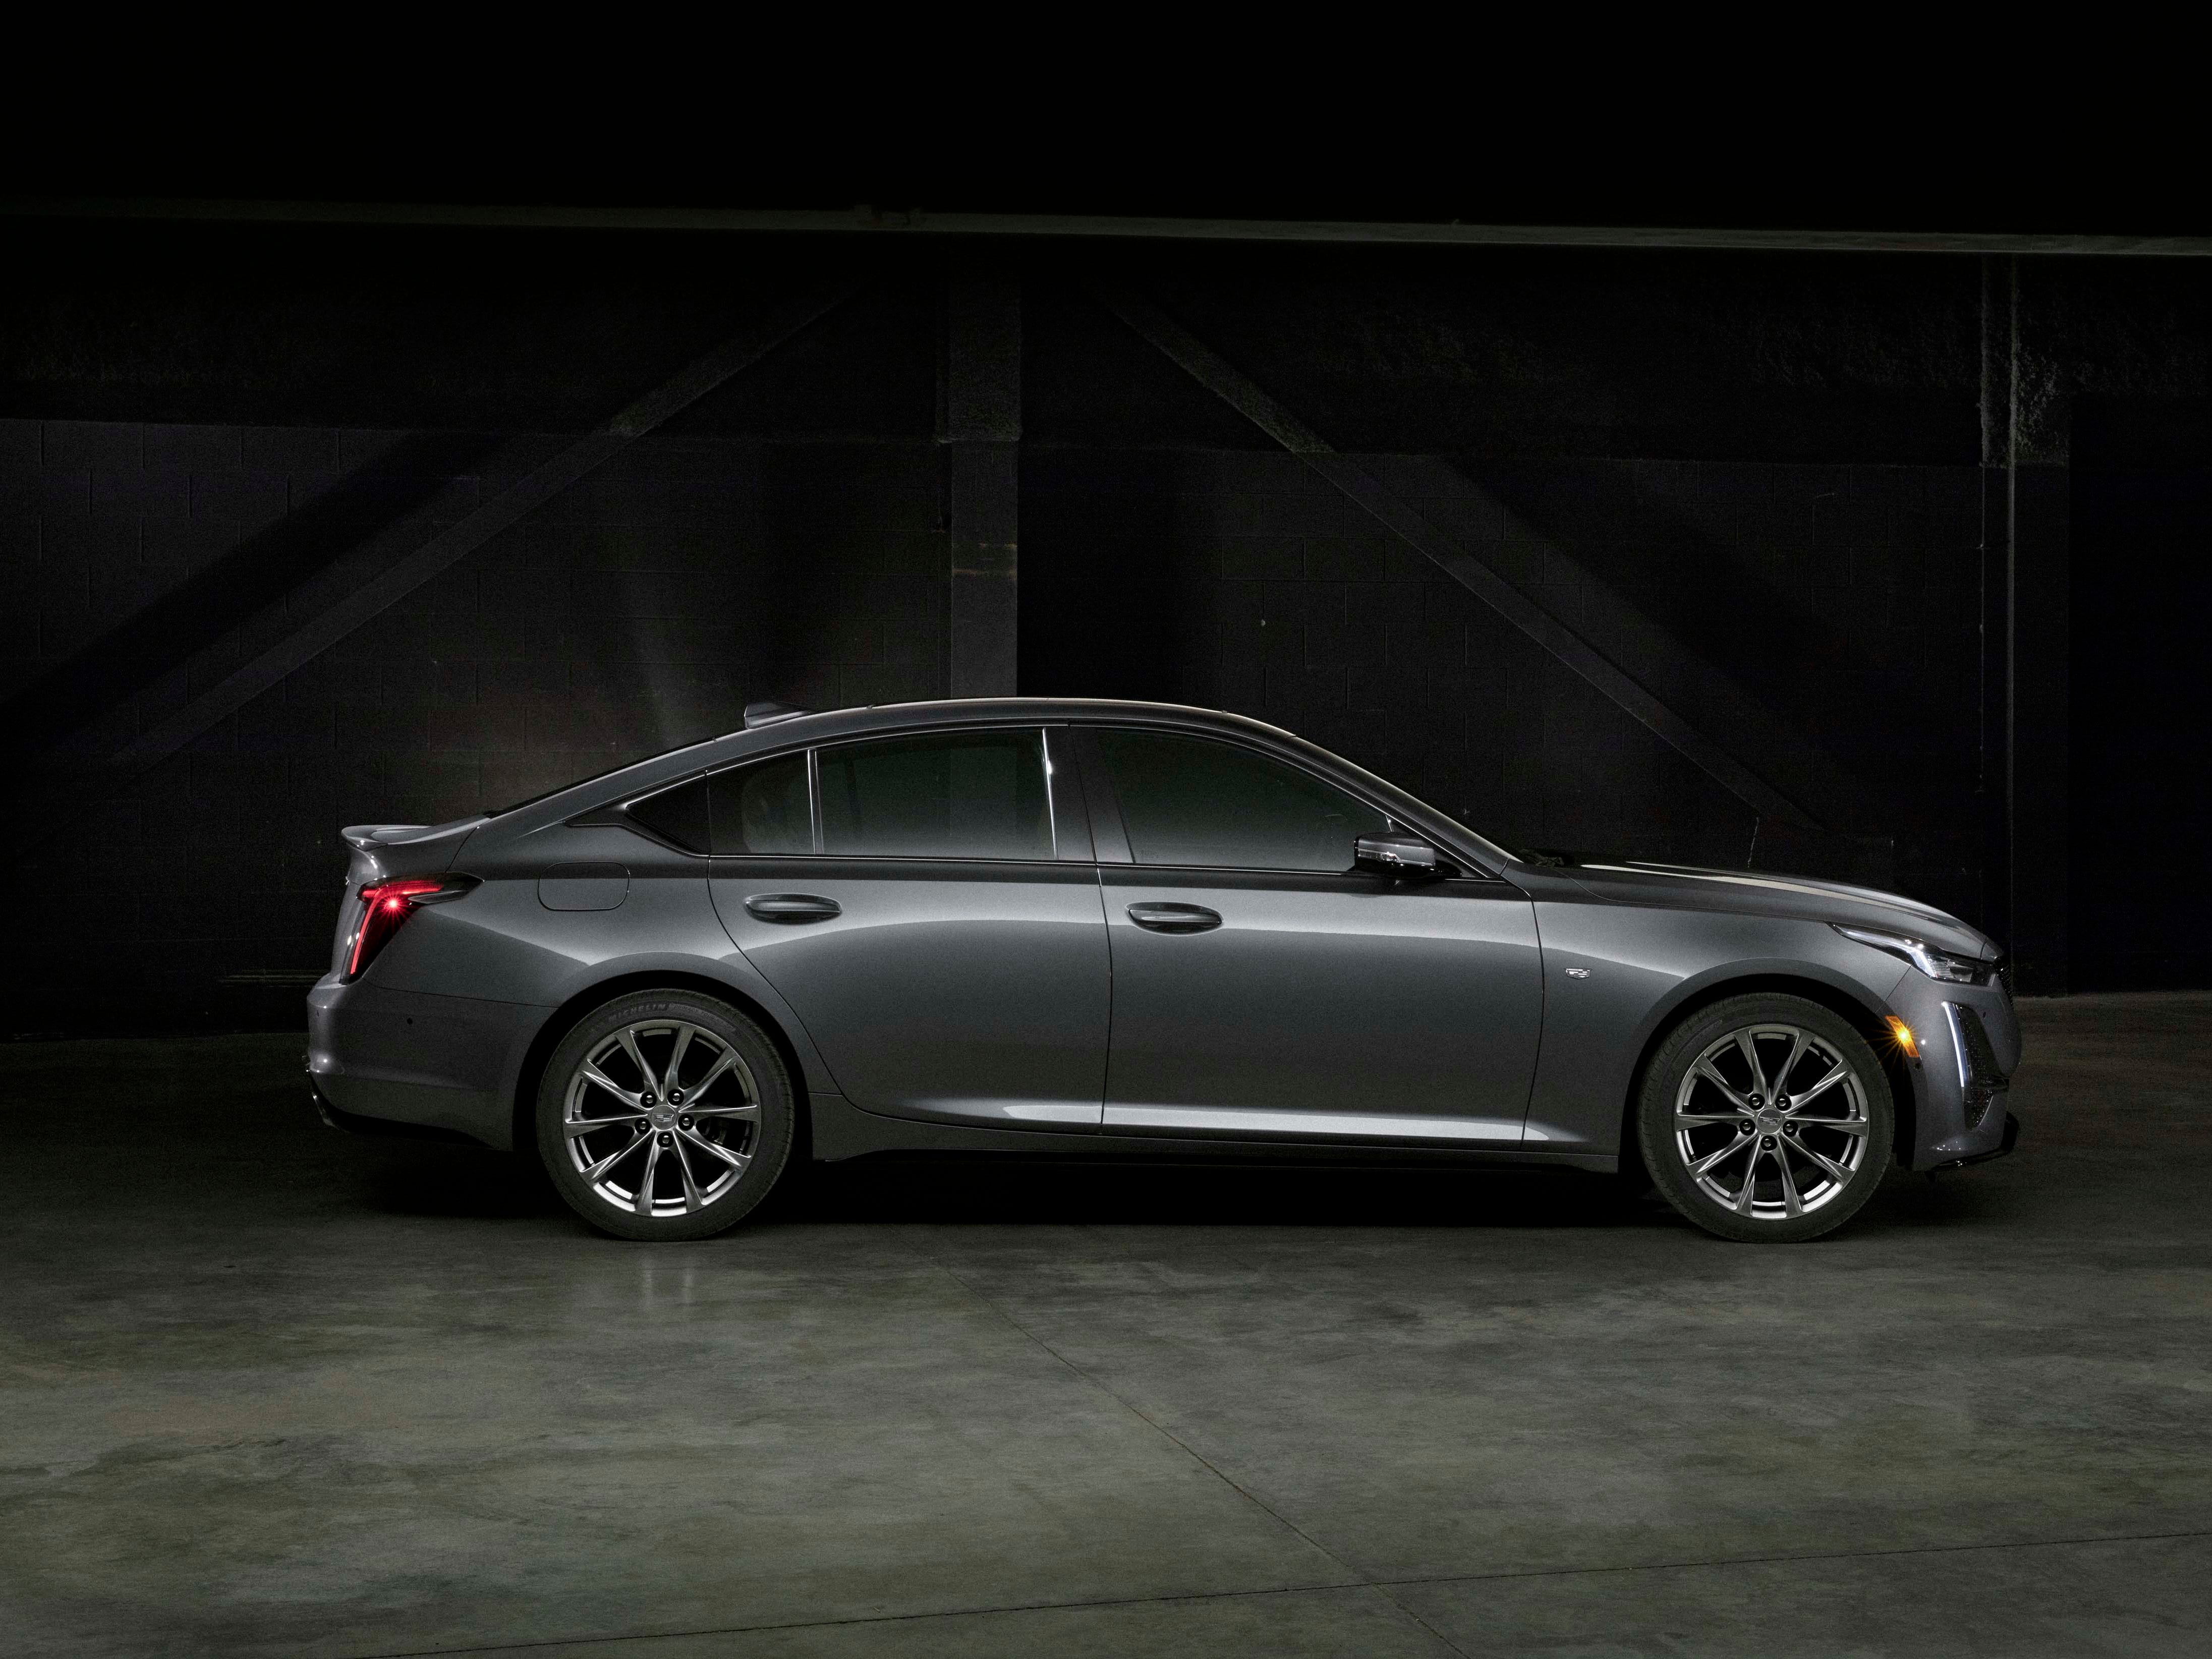 The 2020 Cadillac CT5 slots below the CT6 sedan in Caddy's sedan lineup. With the CT6 due to go away in early 2020, the CT5 will be one of two cars available, including a CT4 later in 2019.